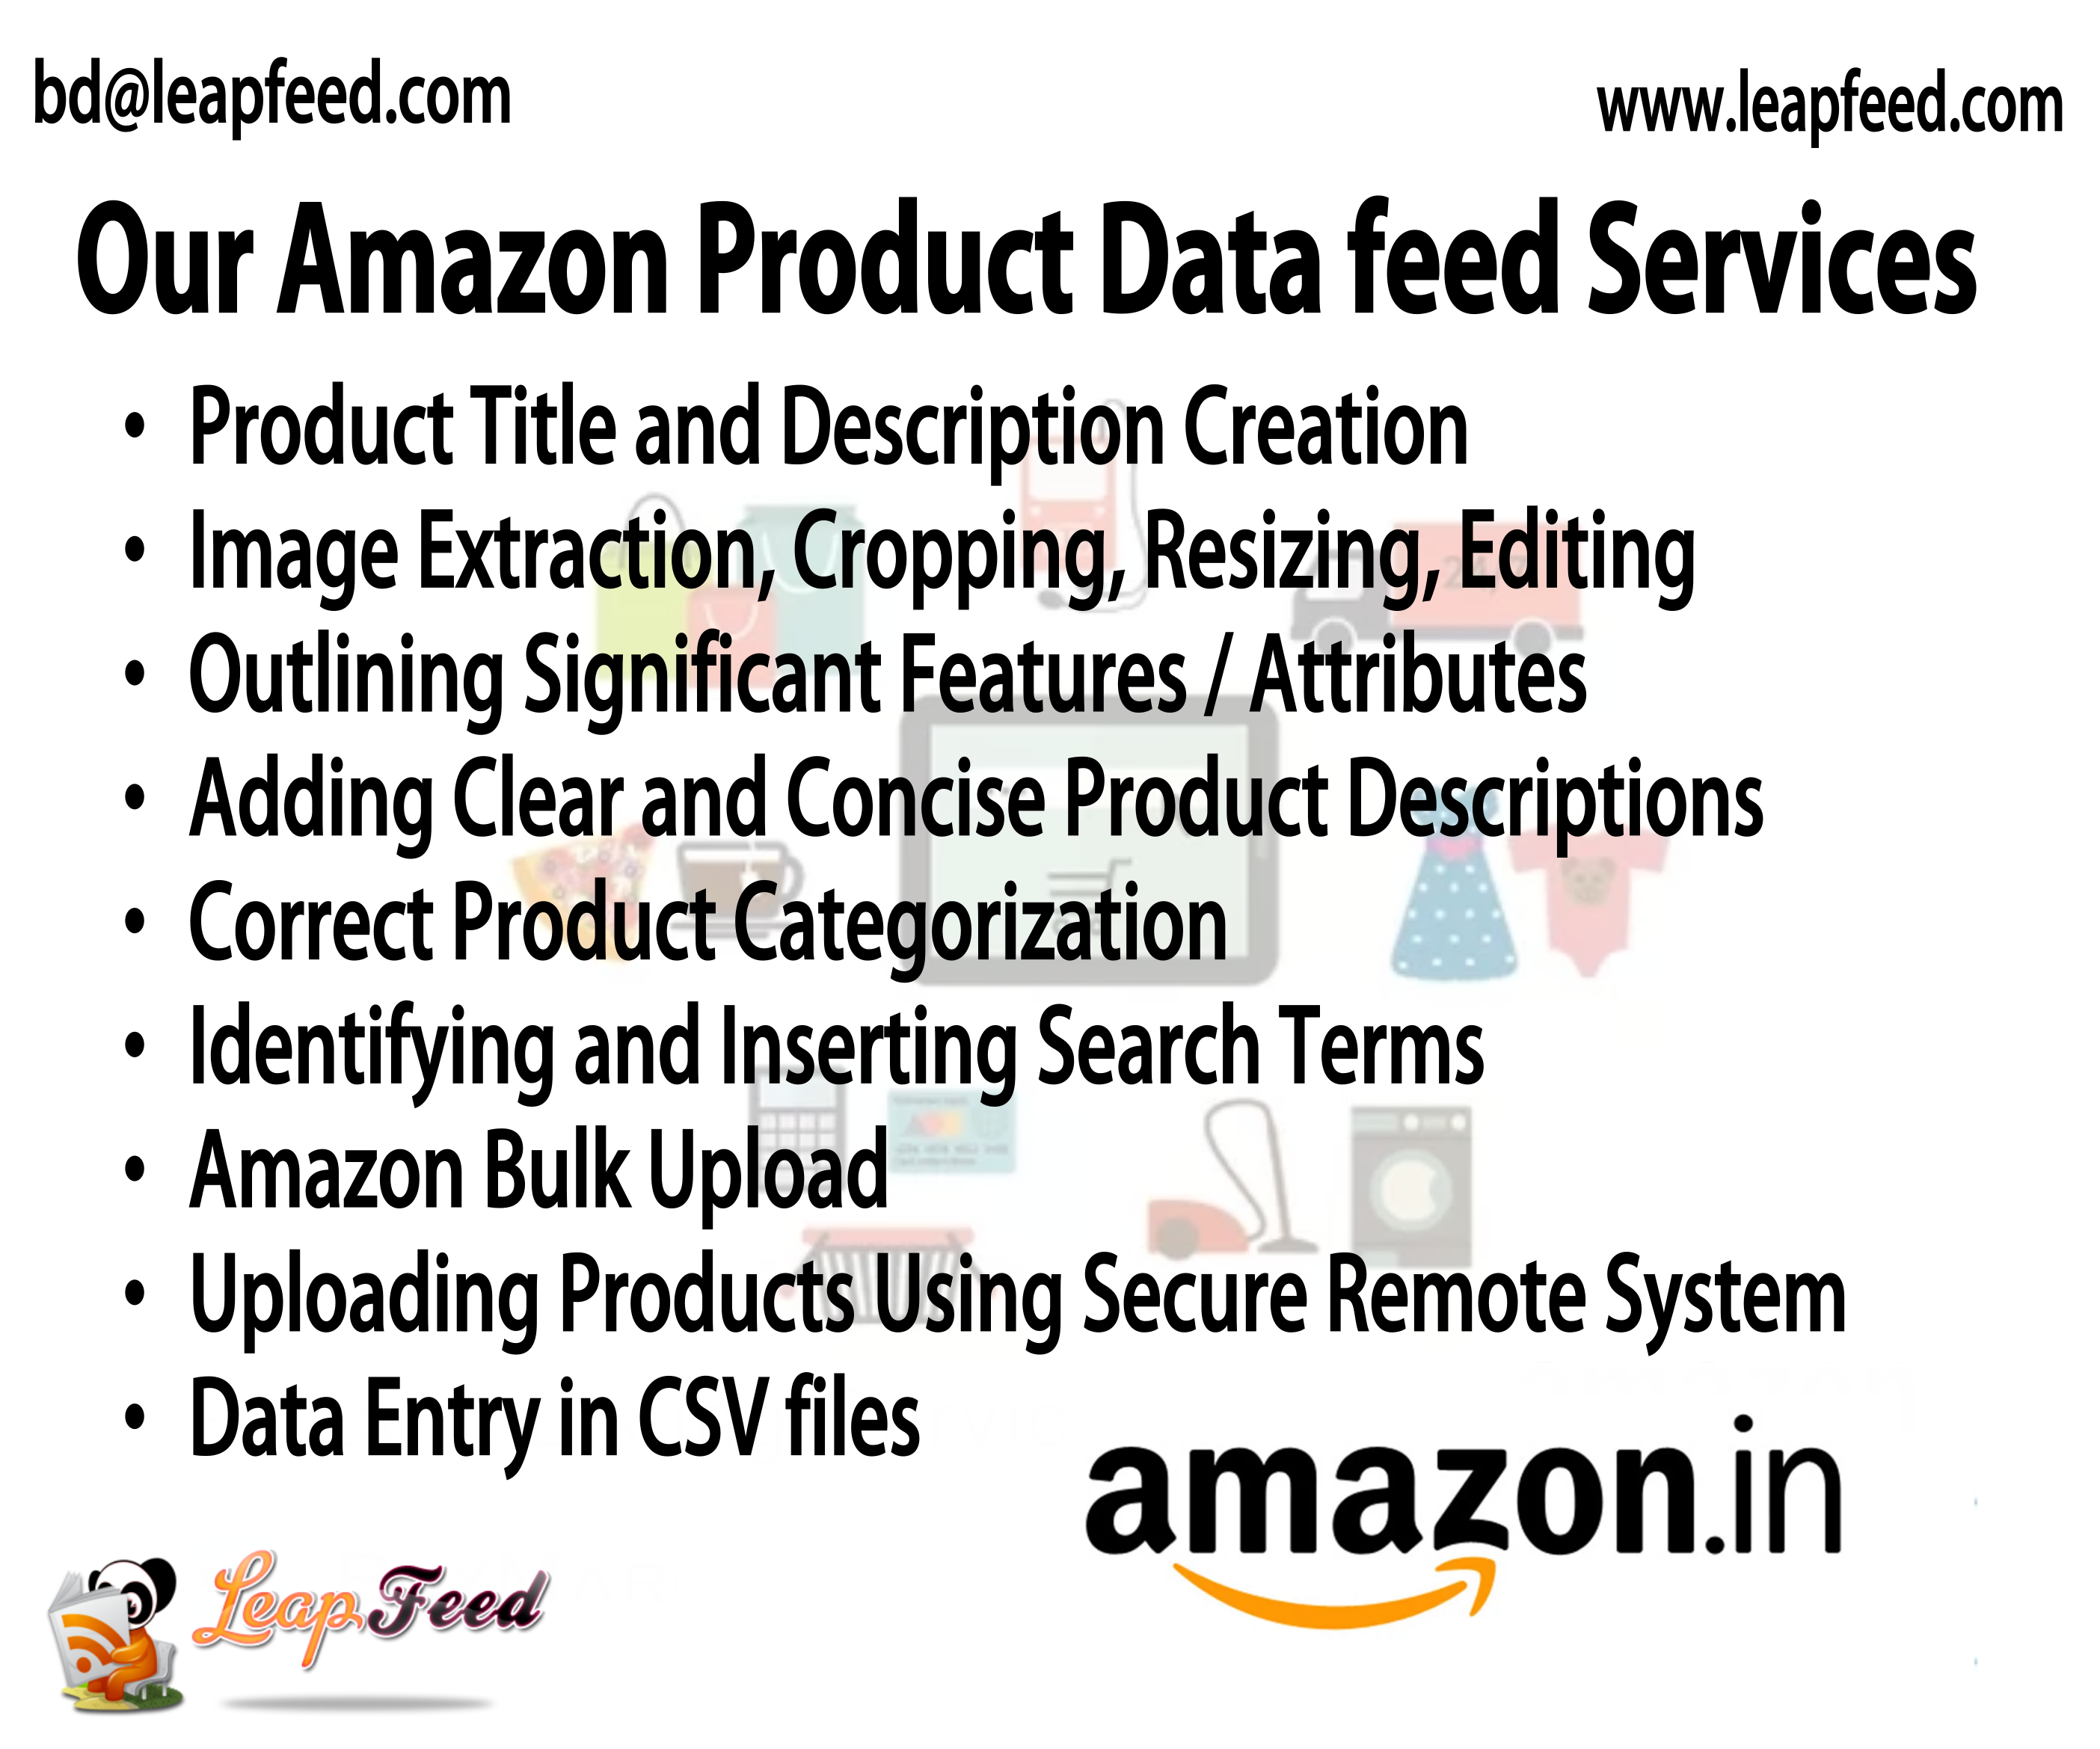 Amazon Product Data feed Services